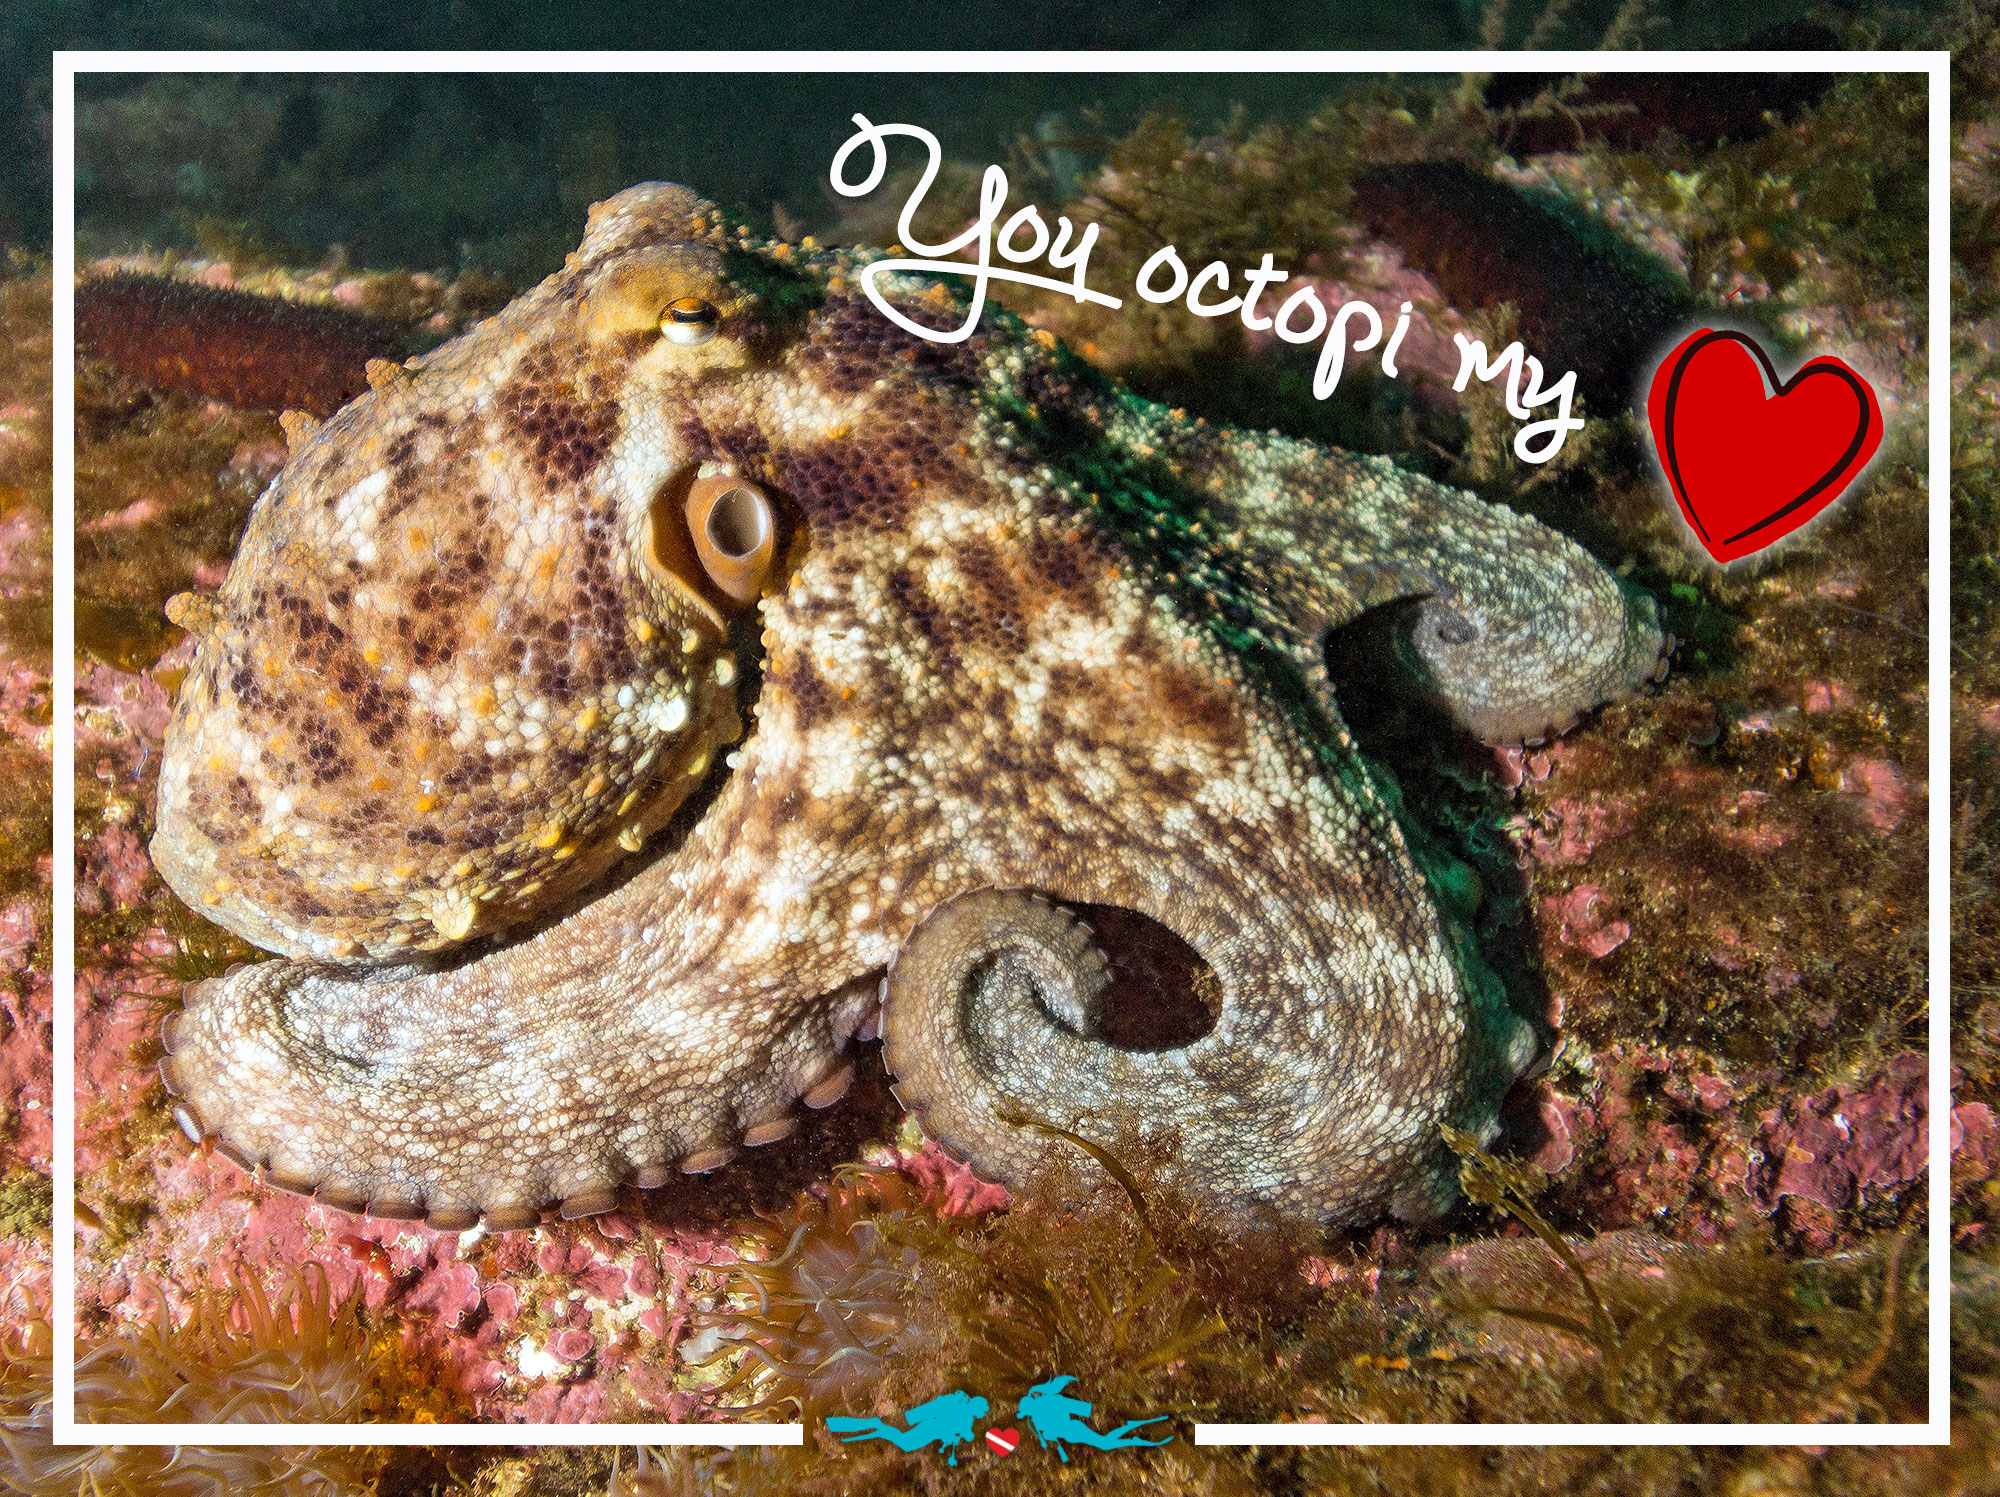 Octopus Valentine's Day Scuba Diving Love Quote